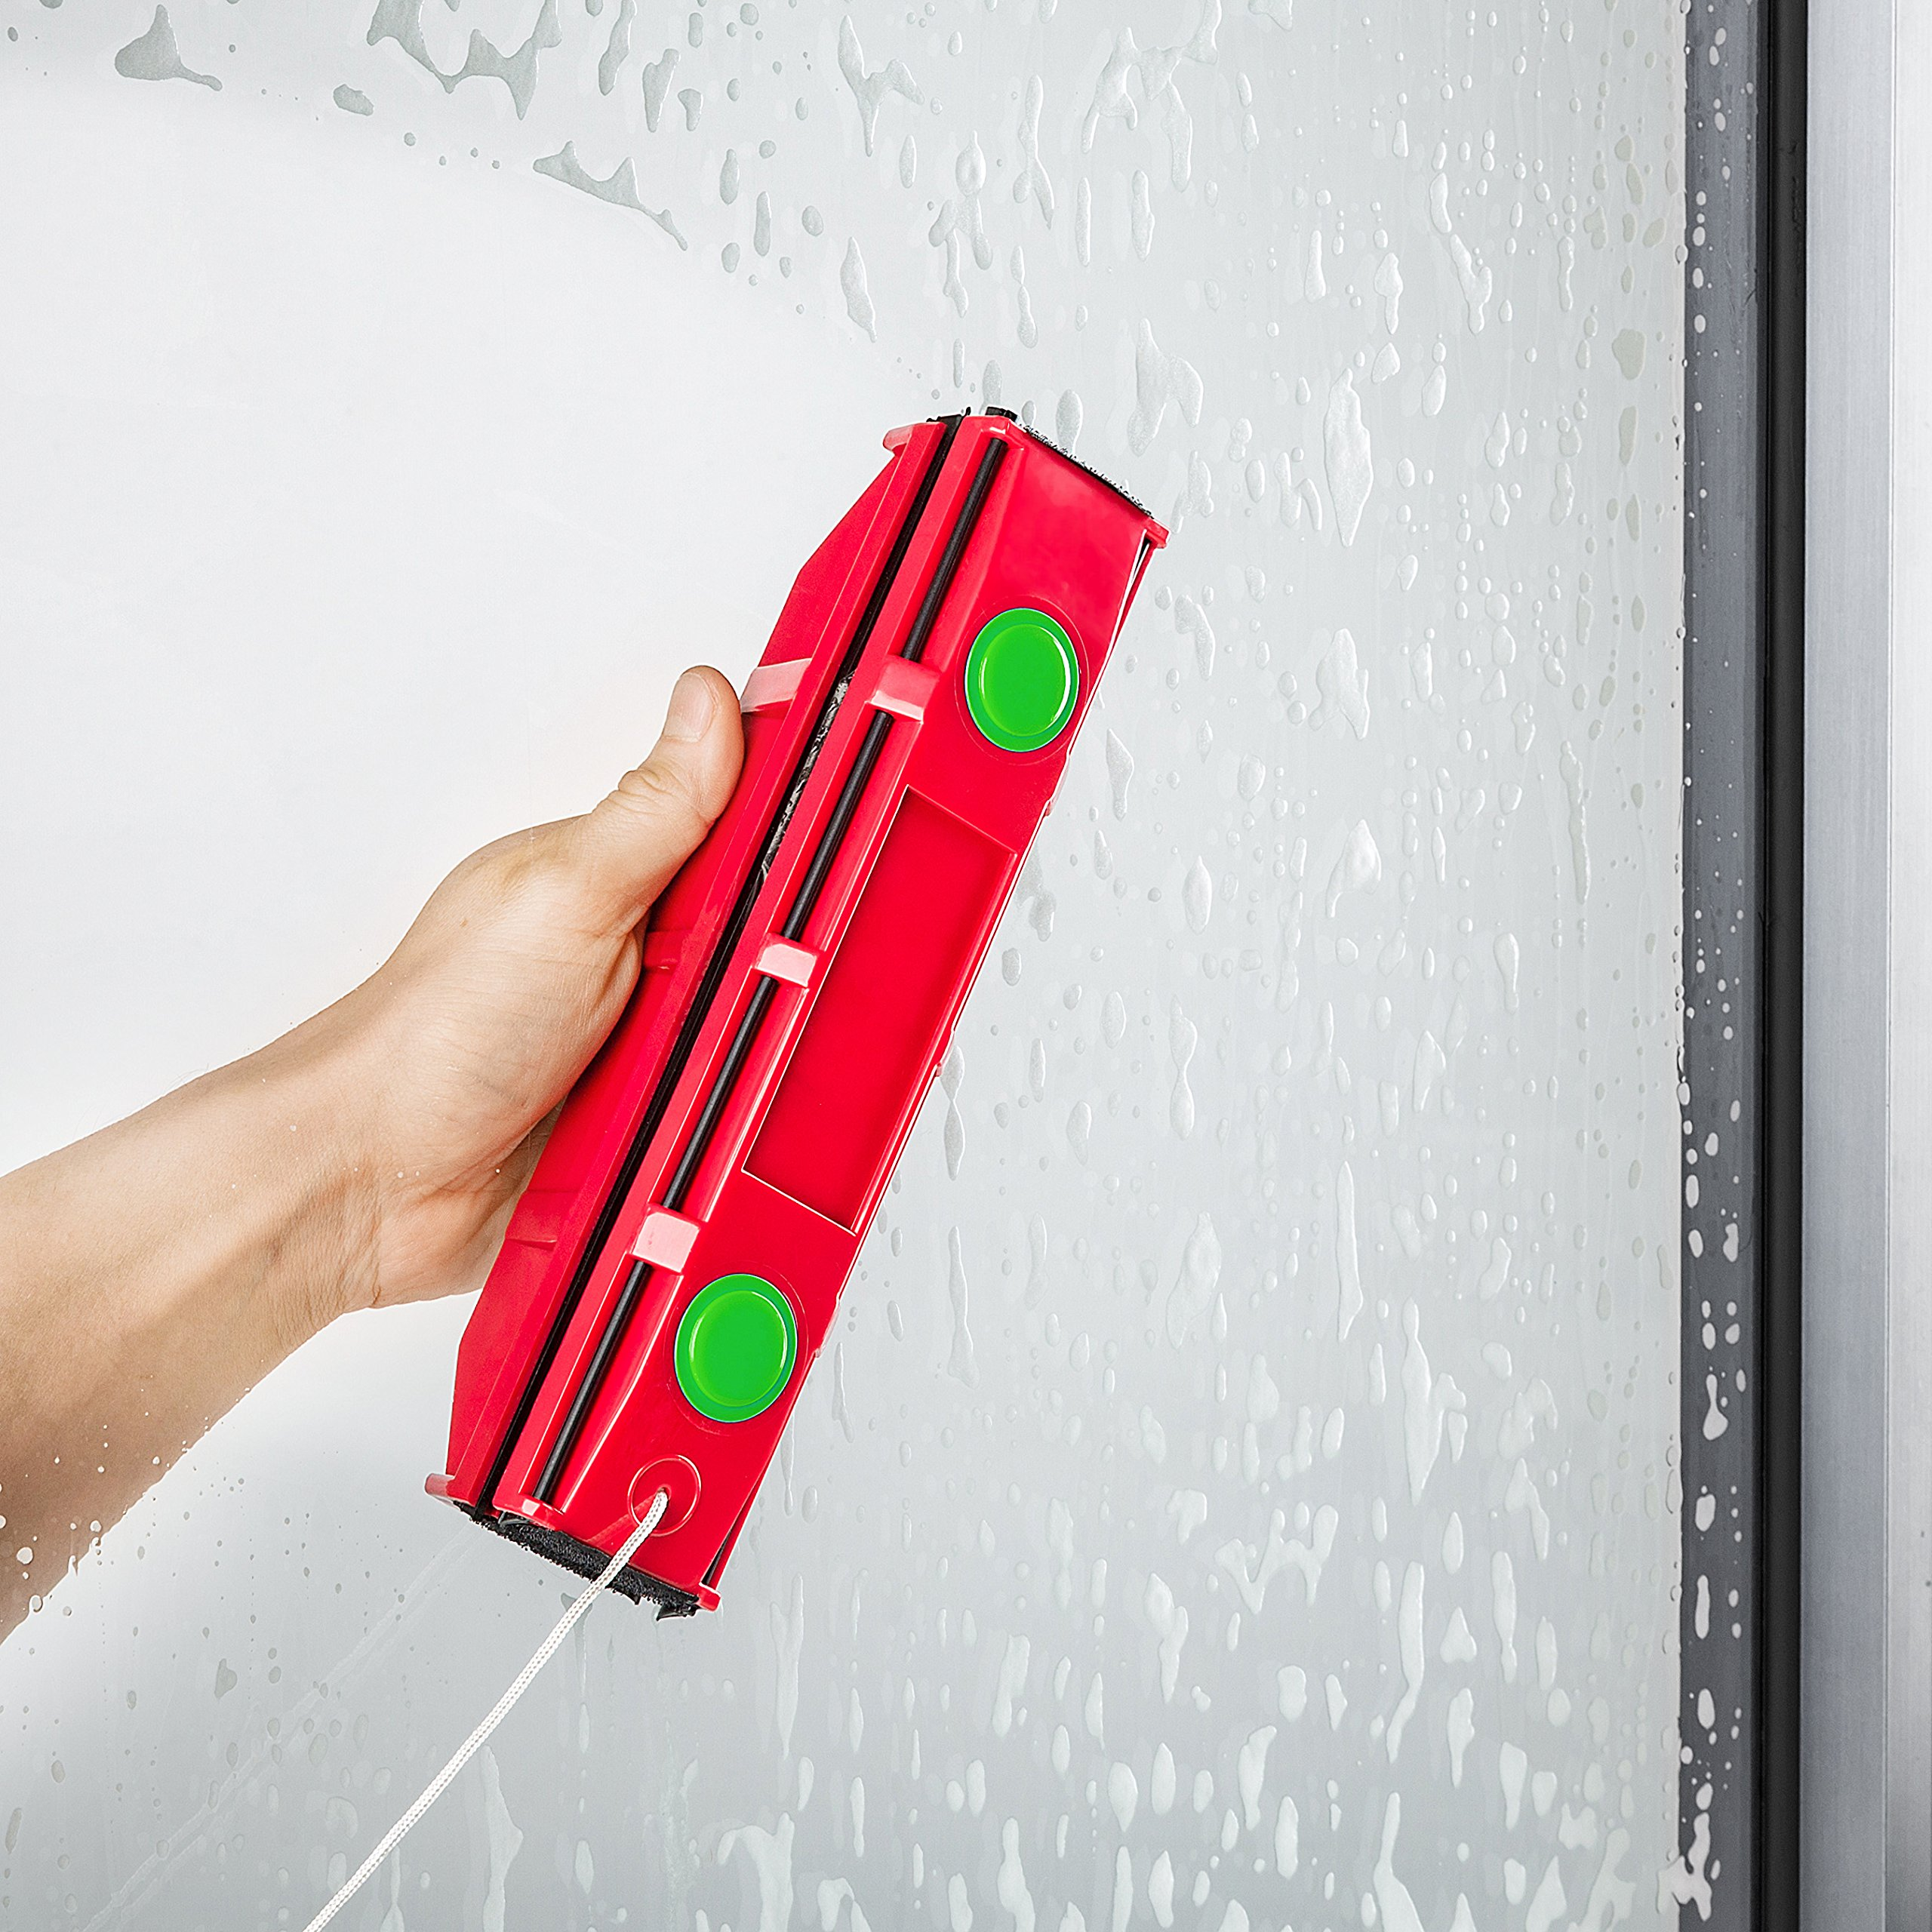 The Glider D-3, Magnetic Window Cleaner for Double Glazed Widows up to 1-1/8'' window thickness by Tyroler Bright Tools (Image #7)